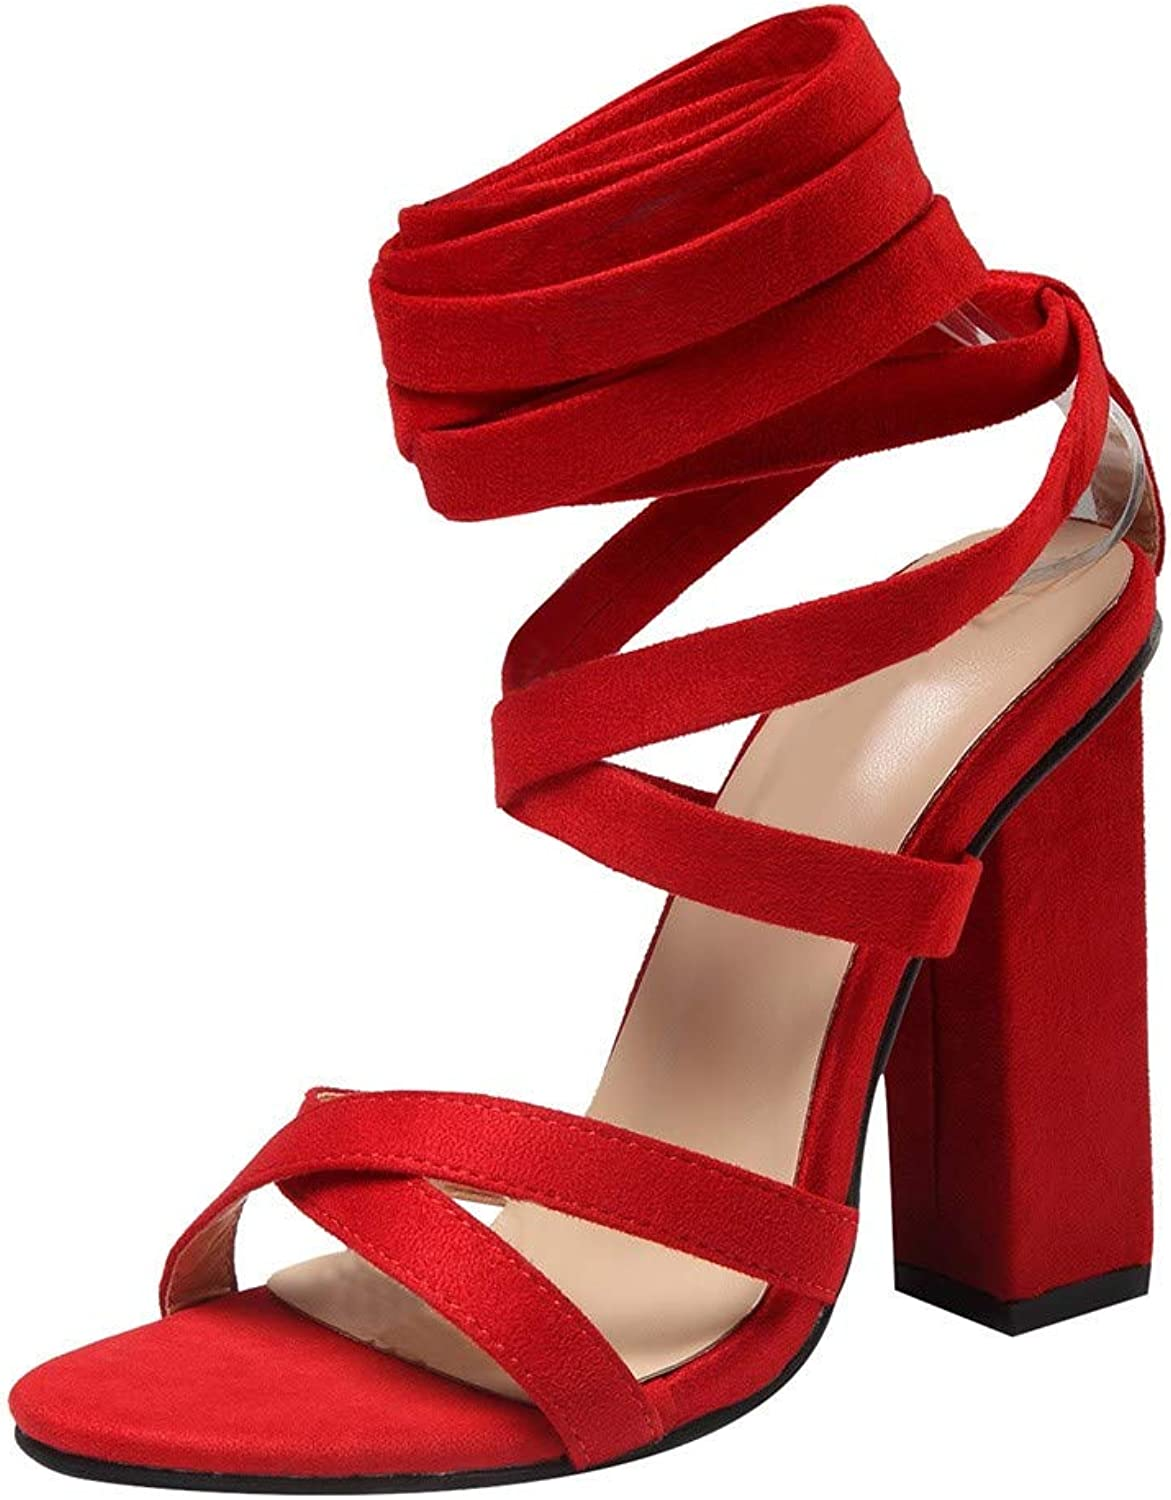 High Heeled Sandals for Women On Sale Clearance,melupa Sexy Cross Strap Wedding Party Prom Pumps